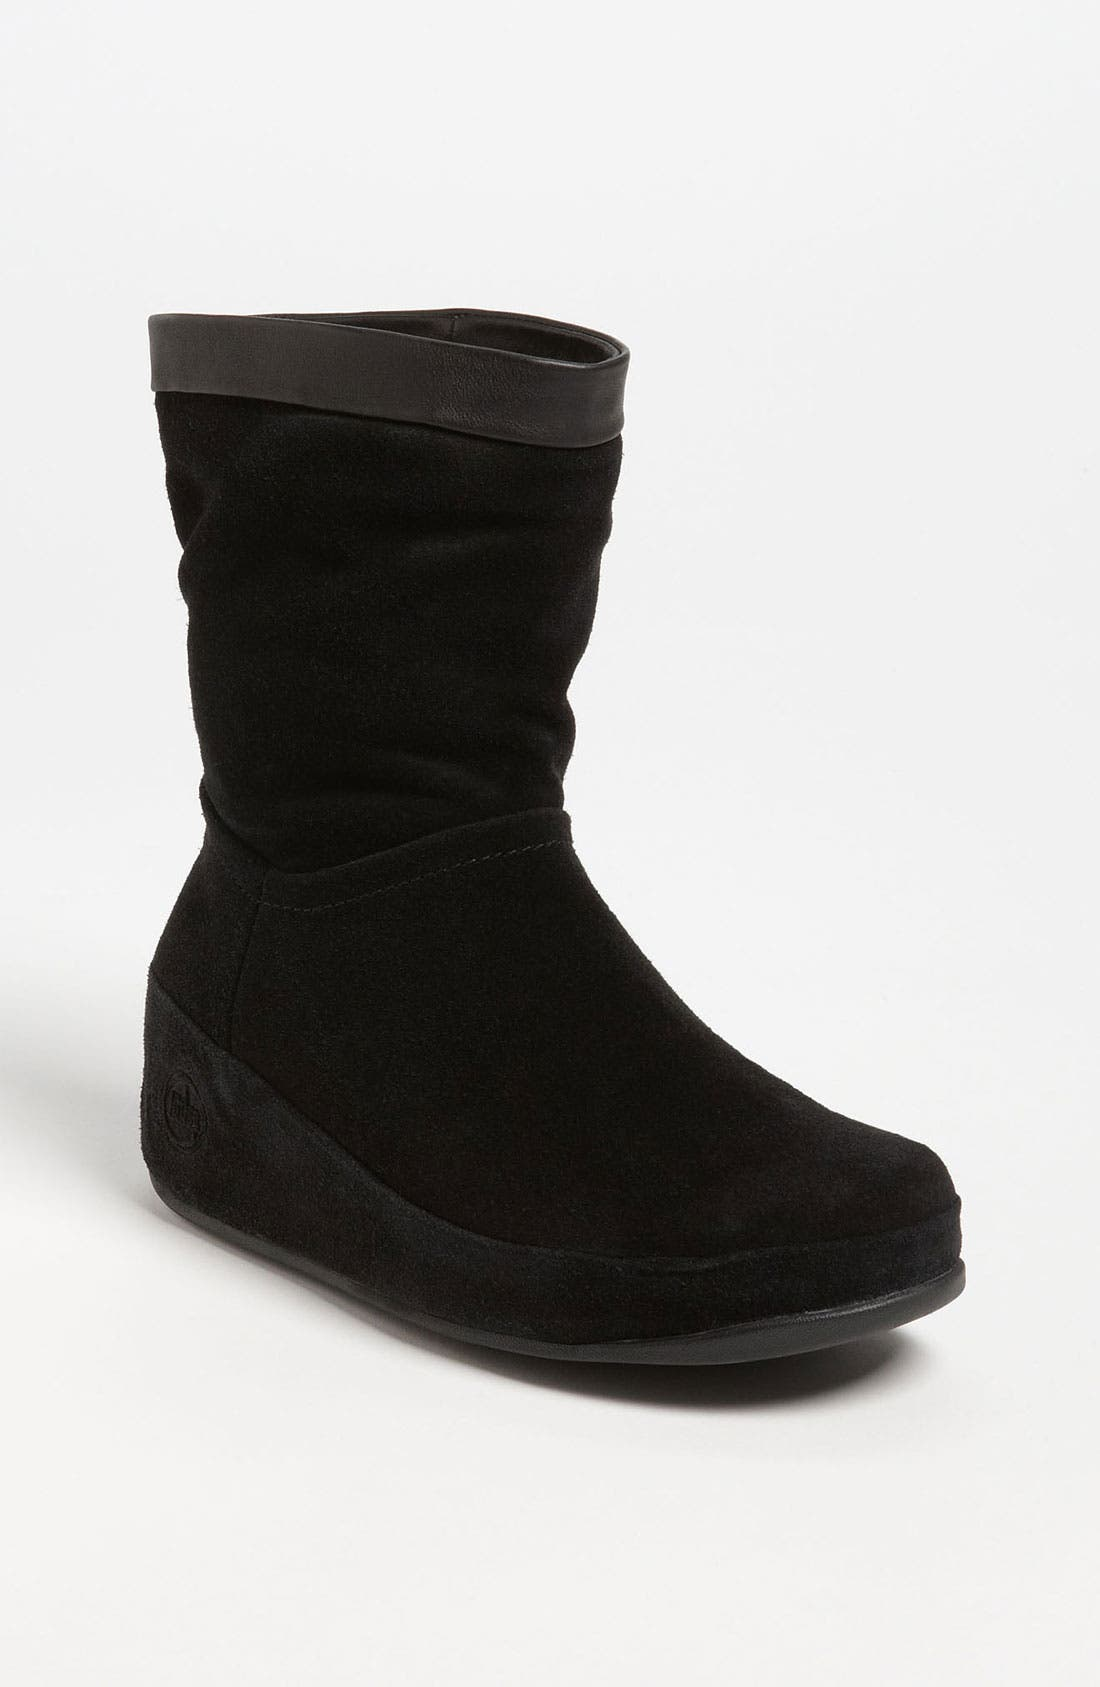 FITFLOP 'Crush<sup>™</sup>' Boot, Main, color, 001